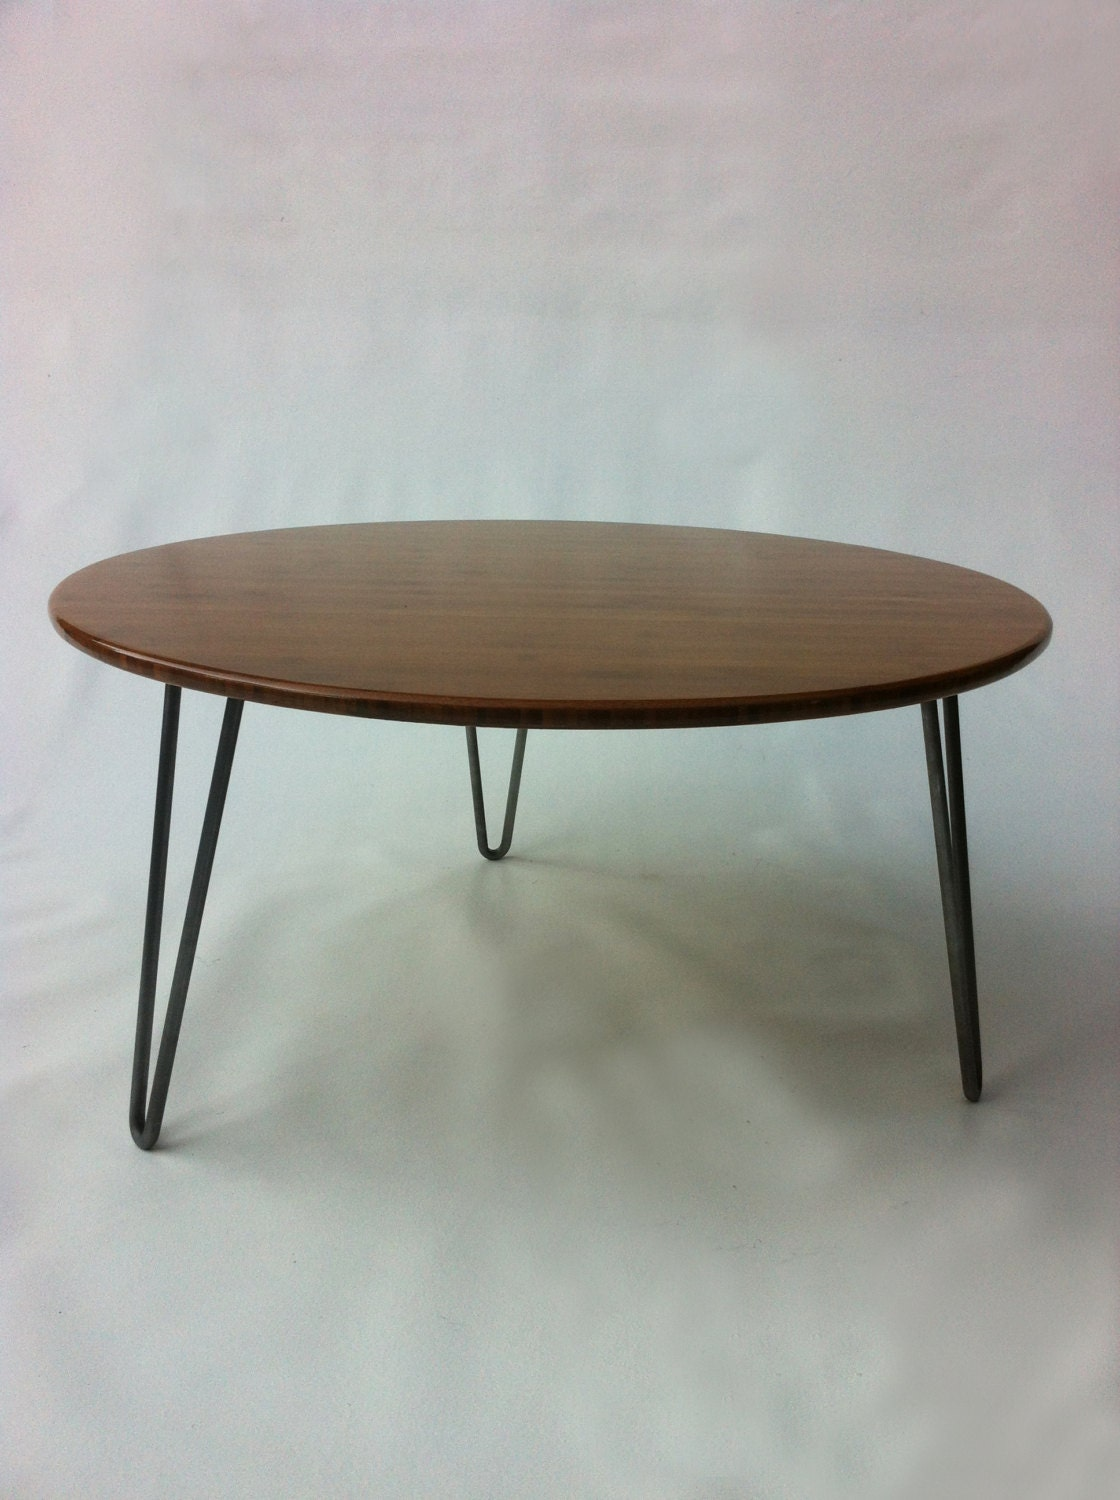 Round Contemporary Coffee Tables: 34 Round Mid Century Modern Coffee Table Atomic Eames